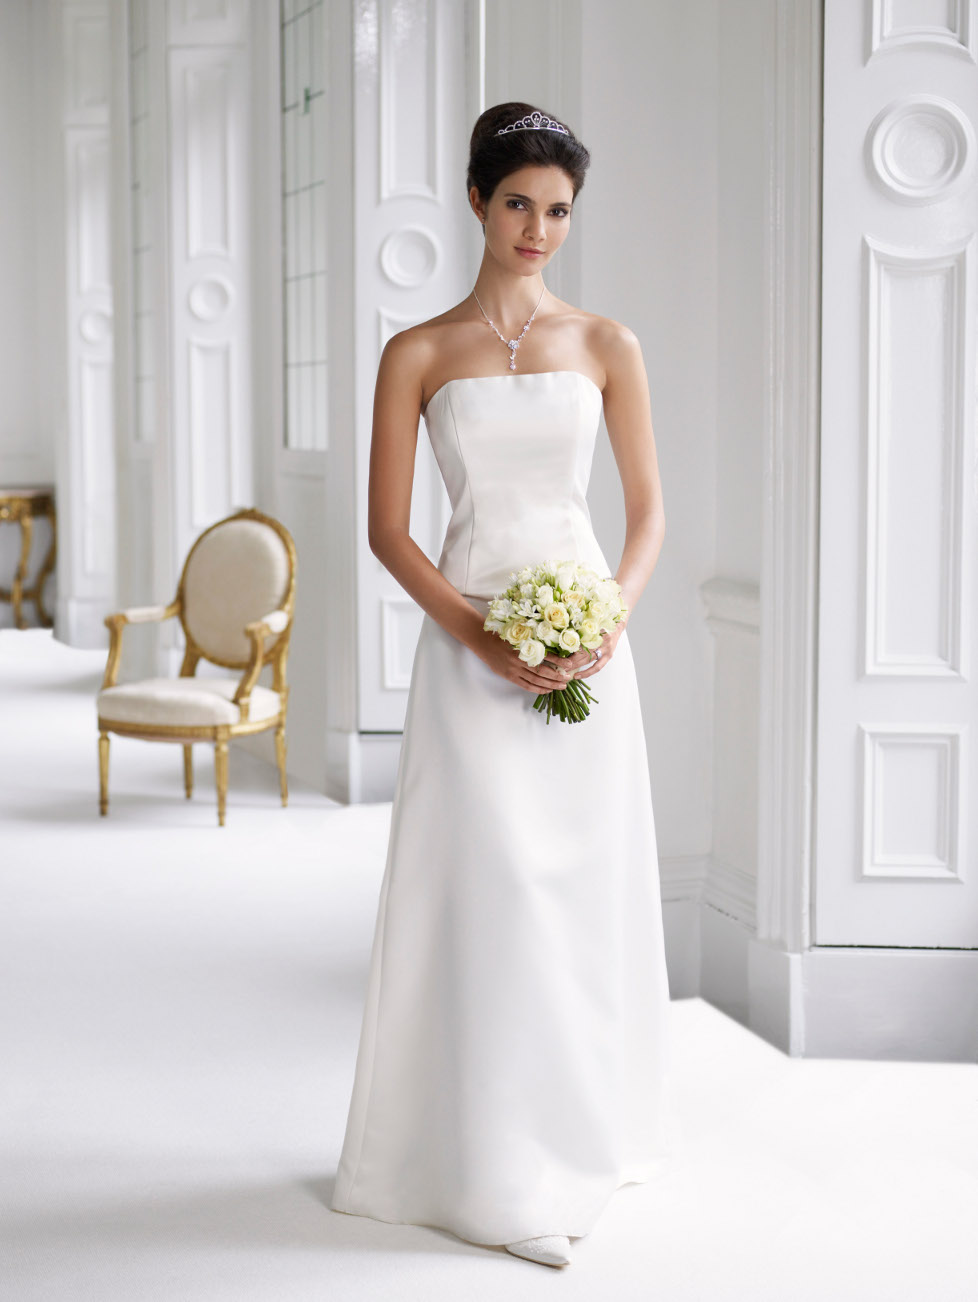 The white wedding dress cherry marry for Marry me wedding dresses